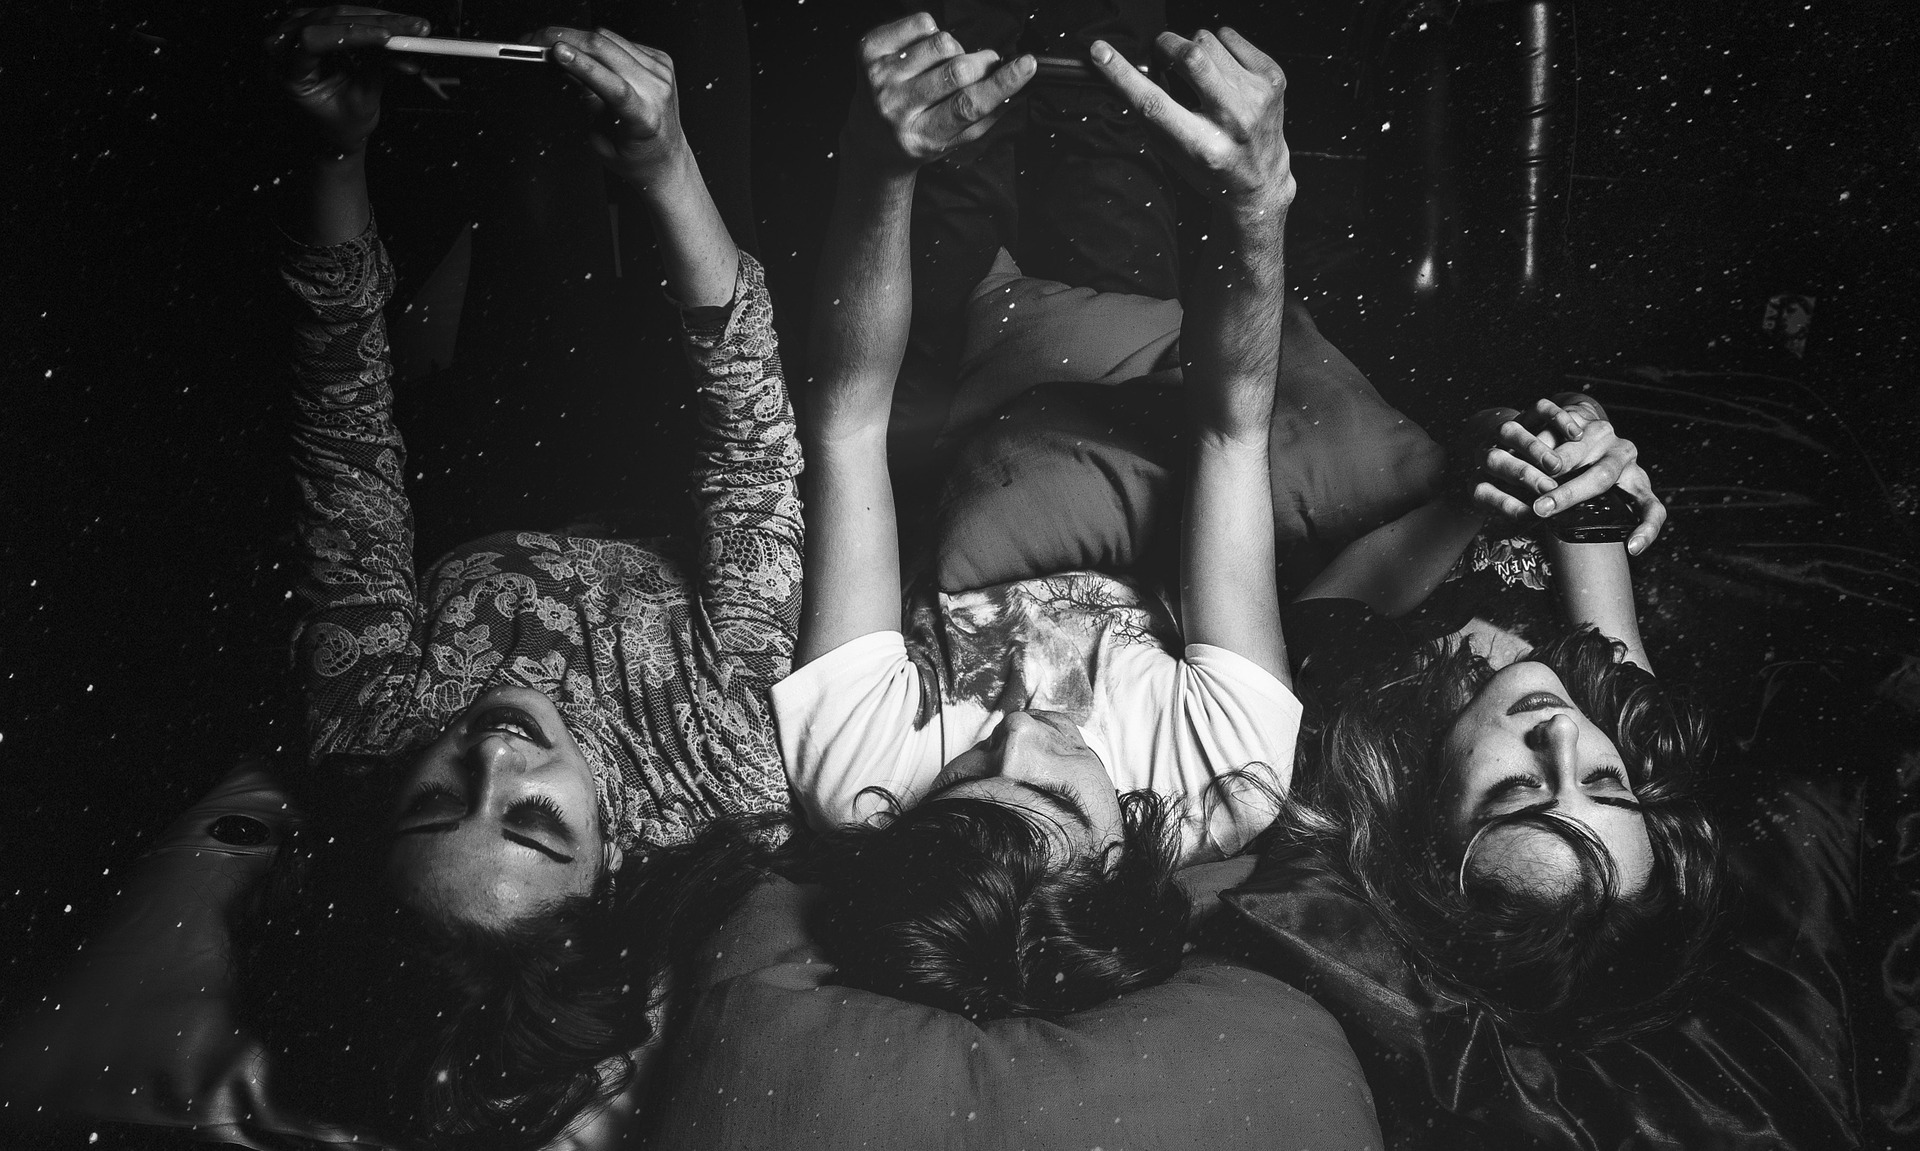 In a black and white photo, three people, two women and one man, are lying in bed facing up with their arms holding their phones above their heads.